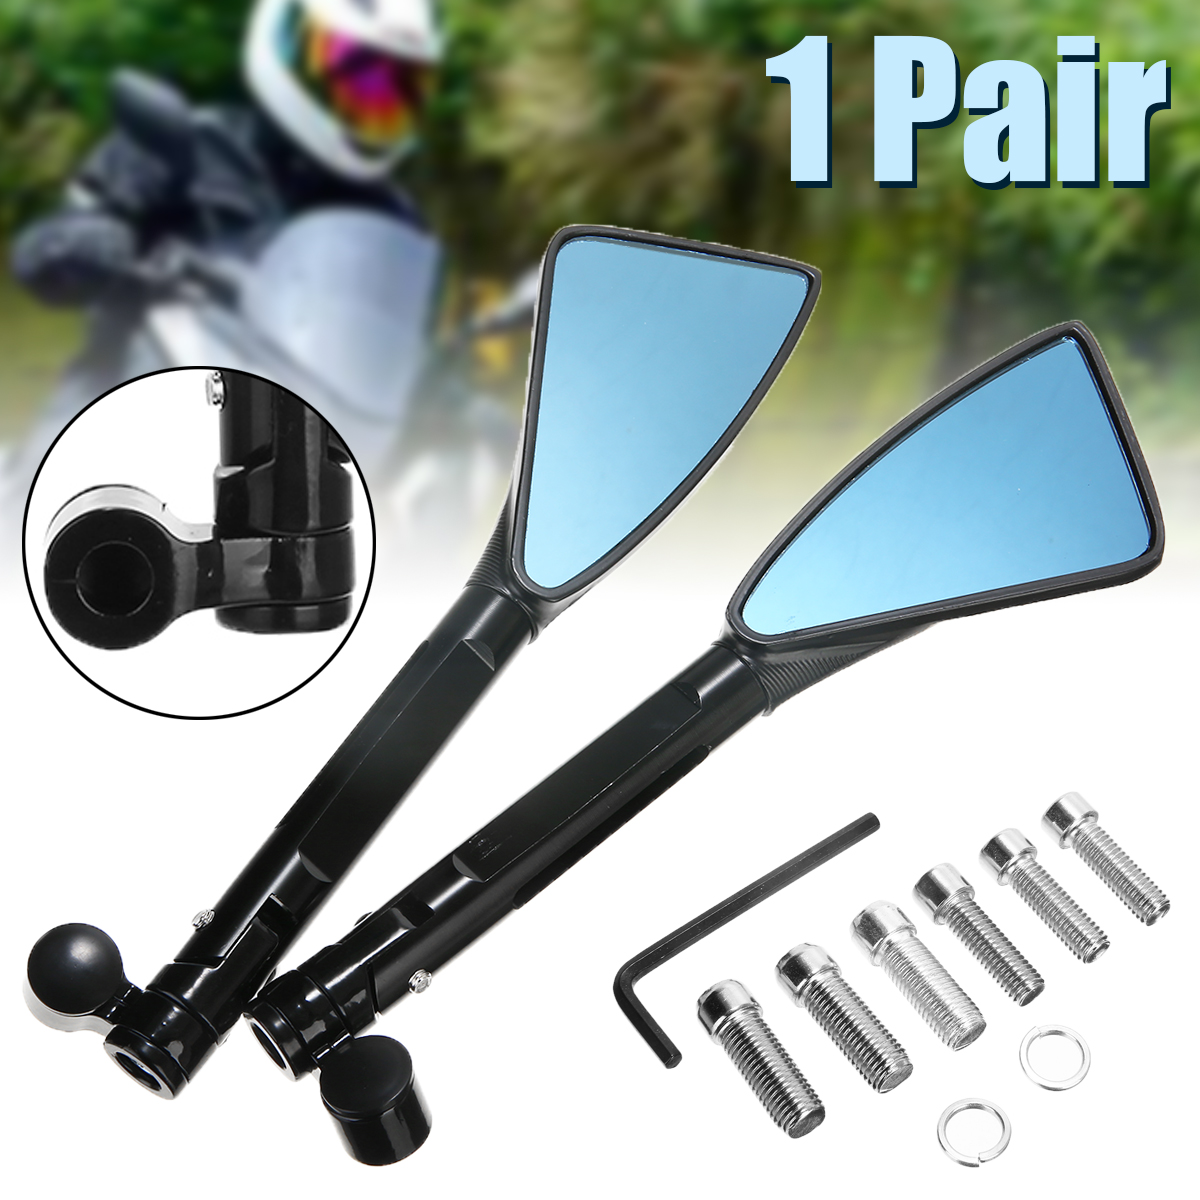 1Pair Black CNC Aluminum Motorcycle Rearview Mirror Antiglare Side Mirrors 8mm 10mm For Moto Accessories